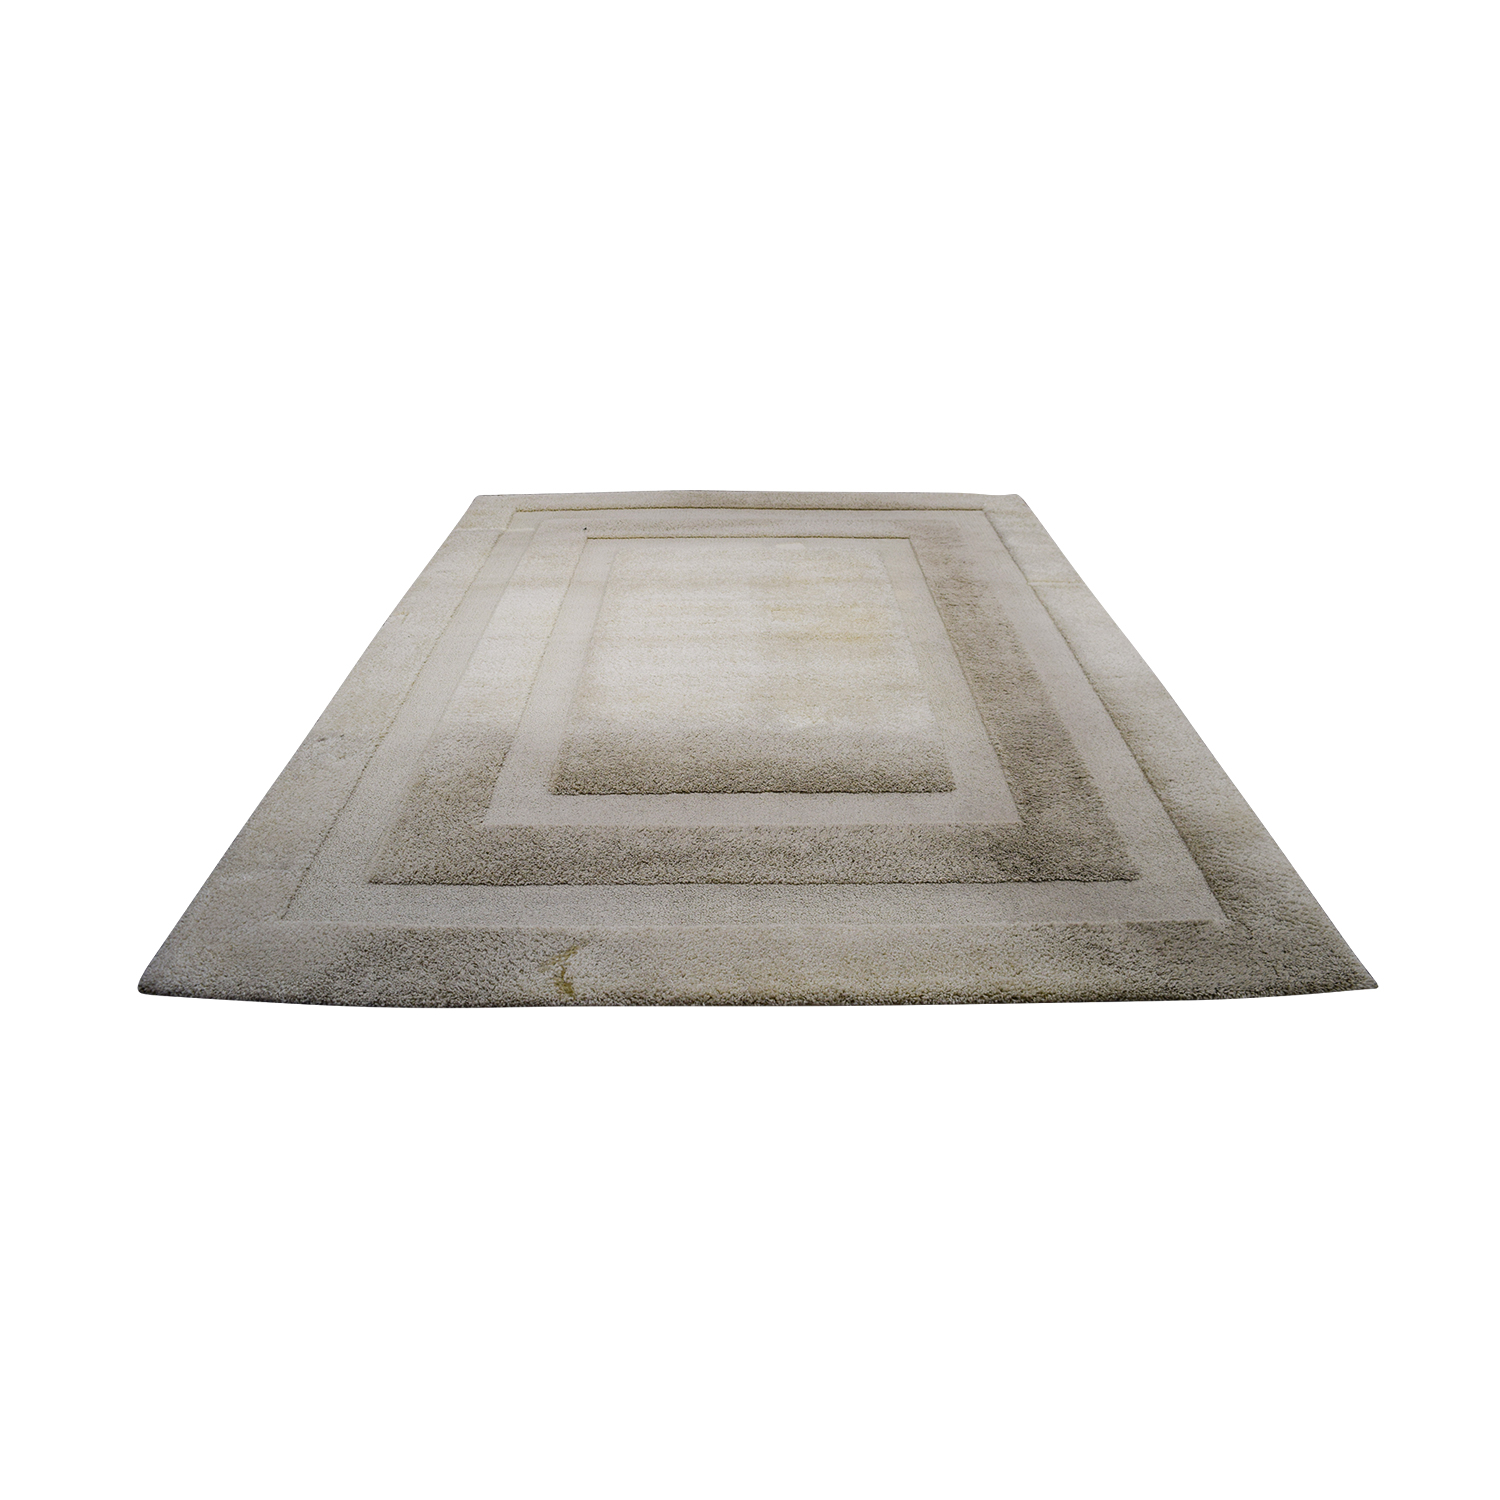 Safavieh White Rug / Rugs